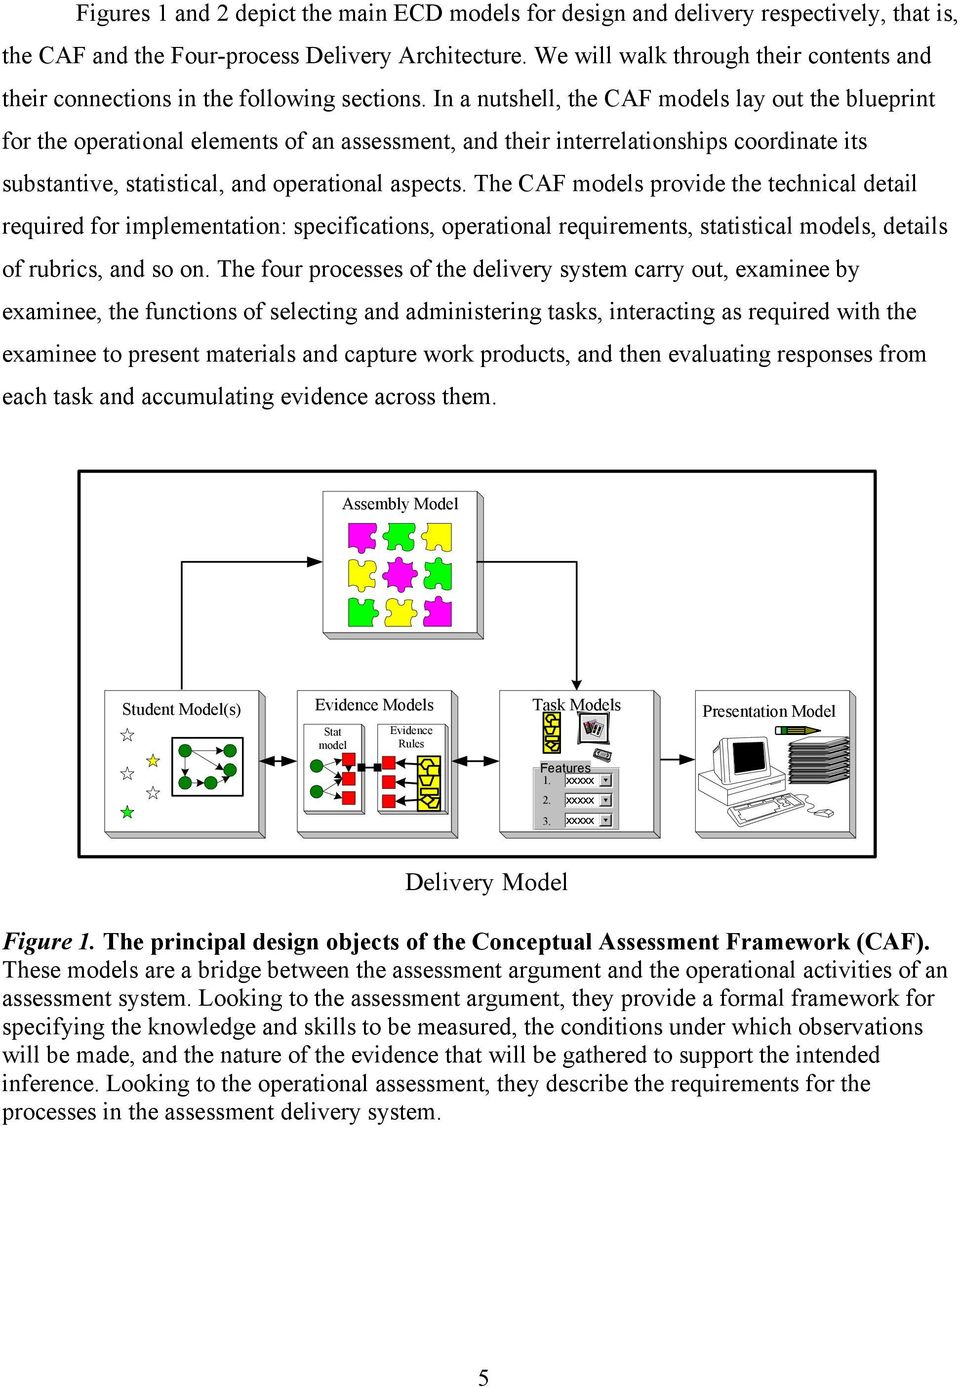 In a nutshell, the CAF models lay out the blueprint for the operational elements of an assessment, and their interrelationships coordinate its substantive, statistical, and operational aspects.